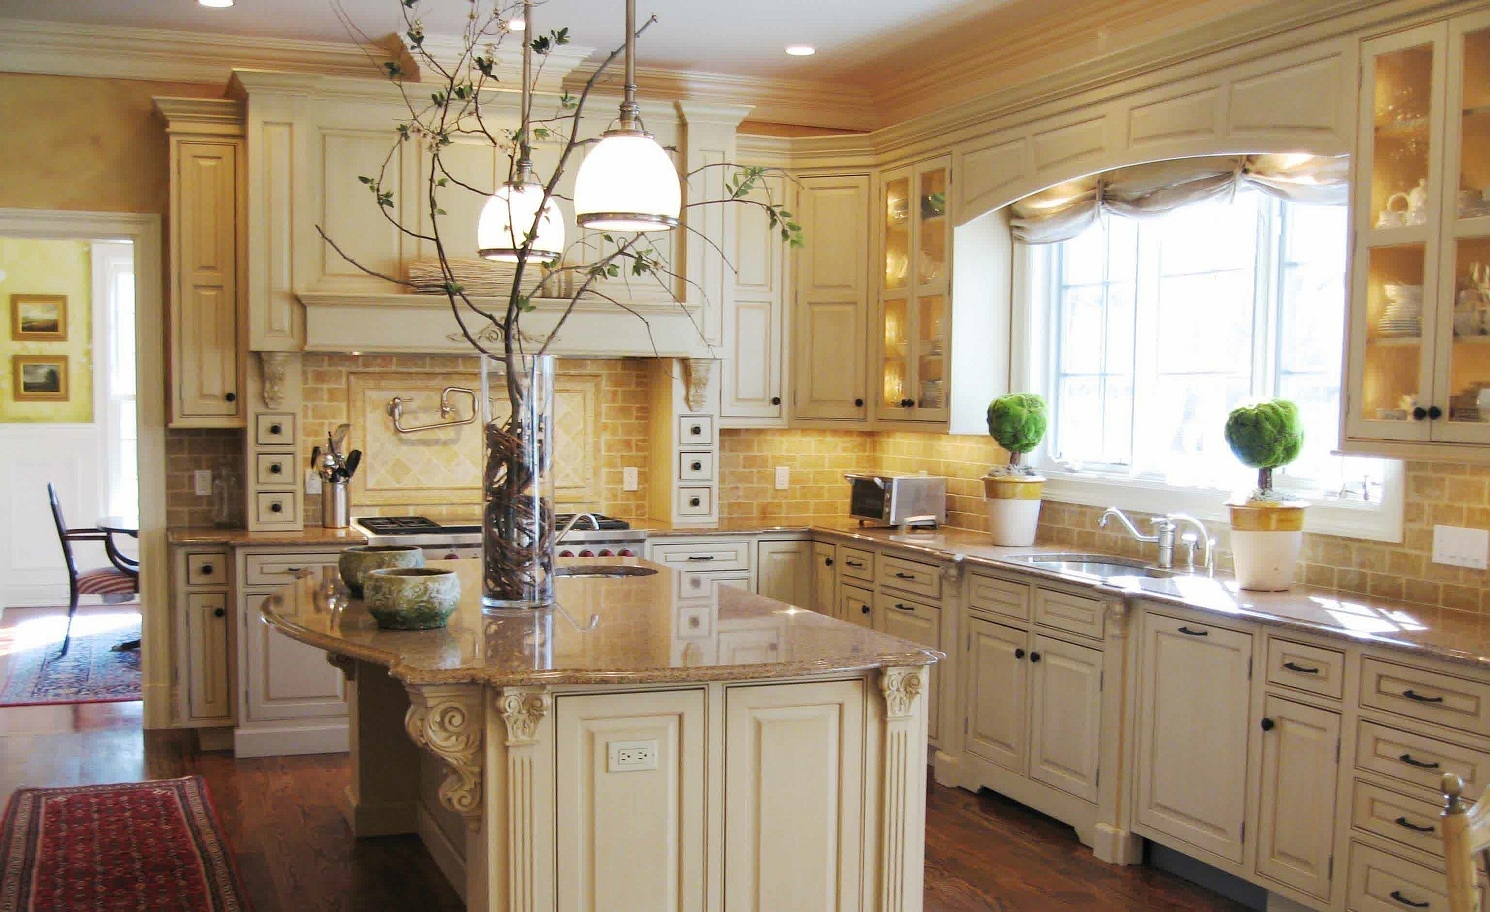 Photos Of Cream Colored Kitchen Cabinets